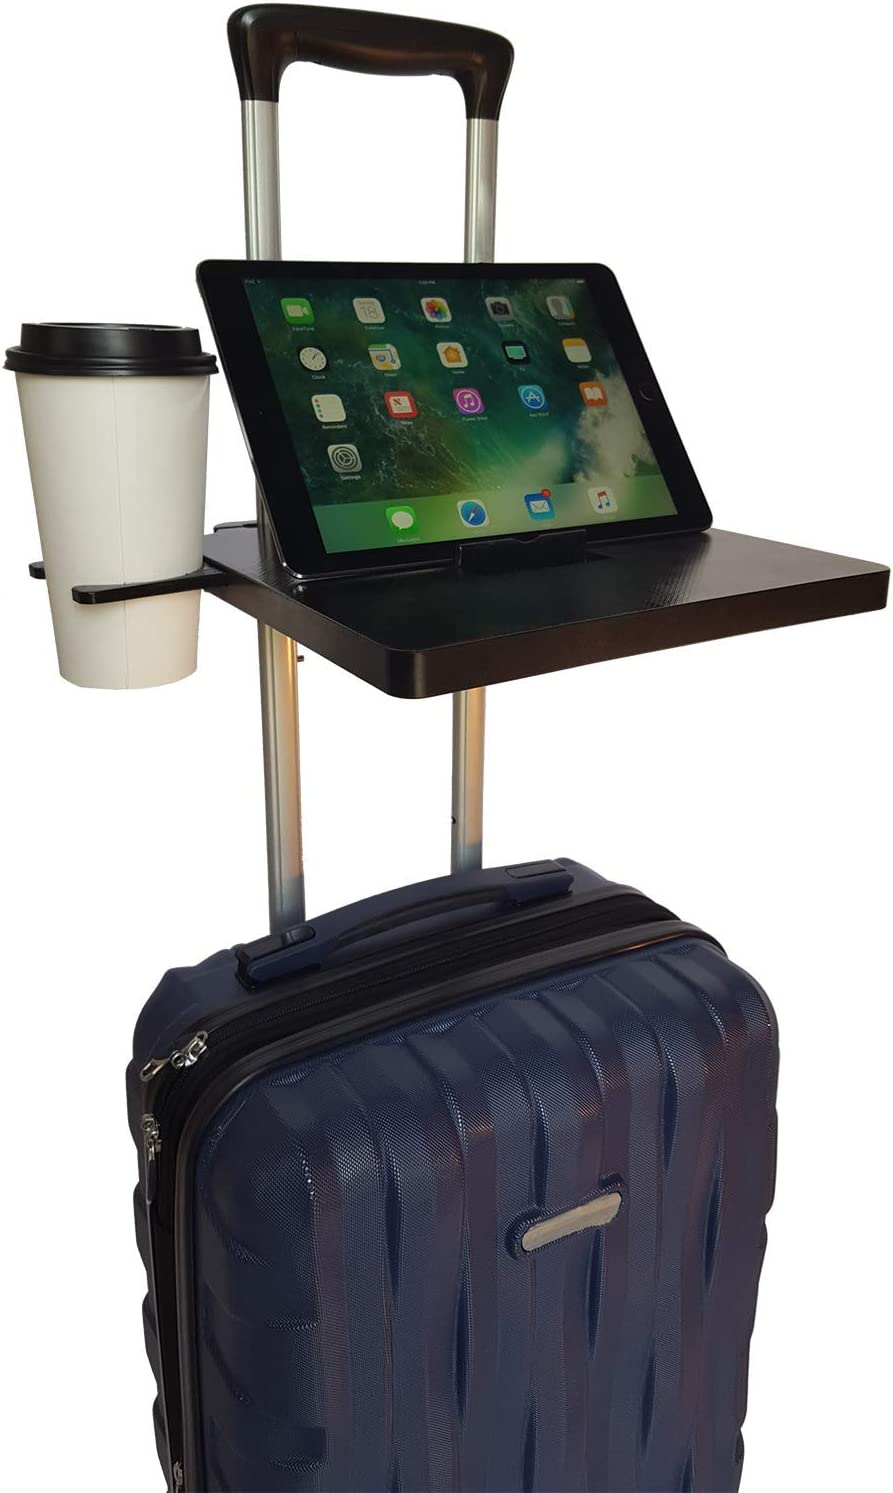 GoDesk: Portable Desk/Work Surface for Luggage and Lap Desk for Laptops, iPads, Tablets, Smart Phones and More!